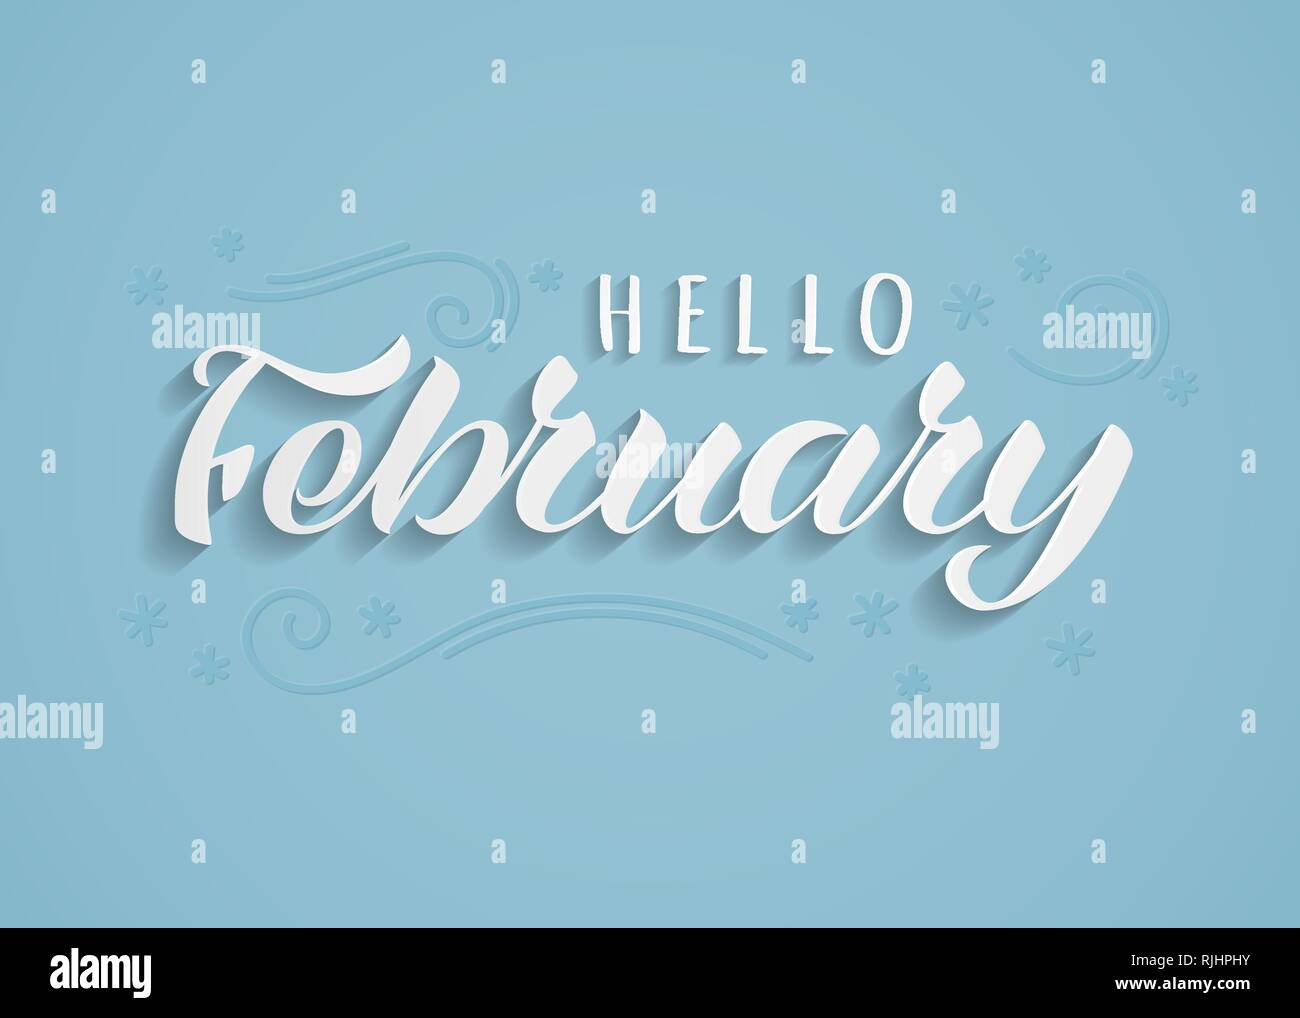 The Month Of February Drawing Stock Photos & The Month Of